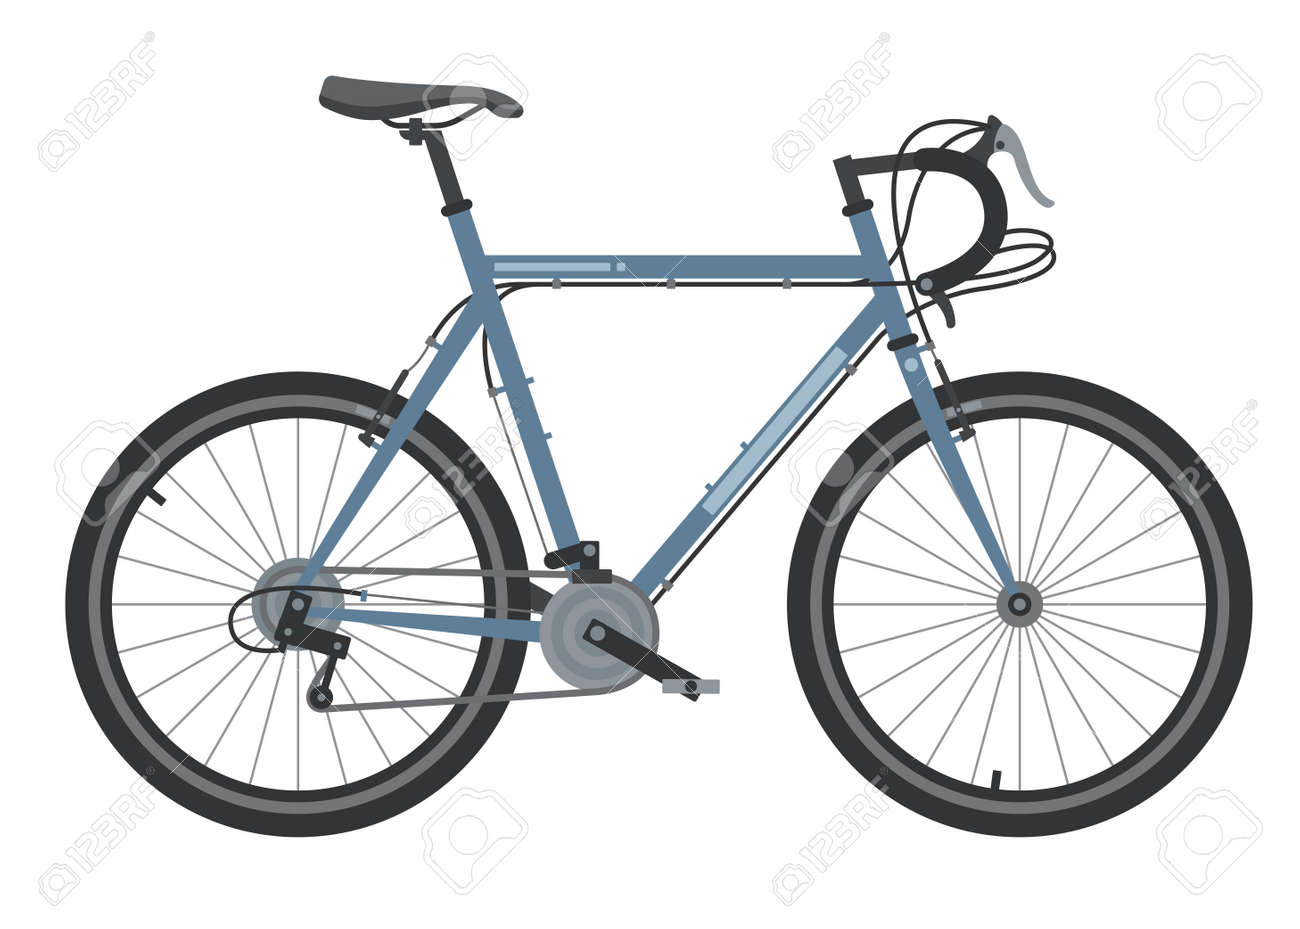 Bicycle element. Bicycle poster. Realistic picture. Vector illustration image. - 145993306